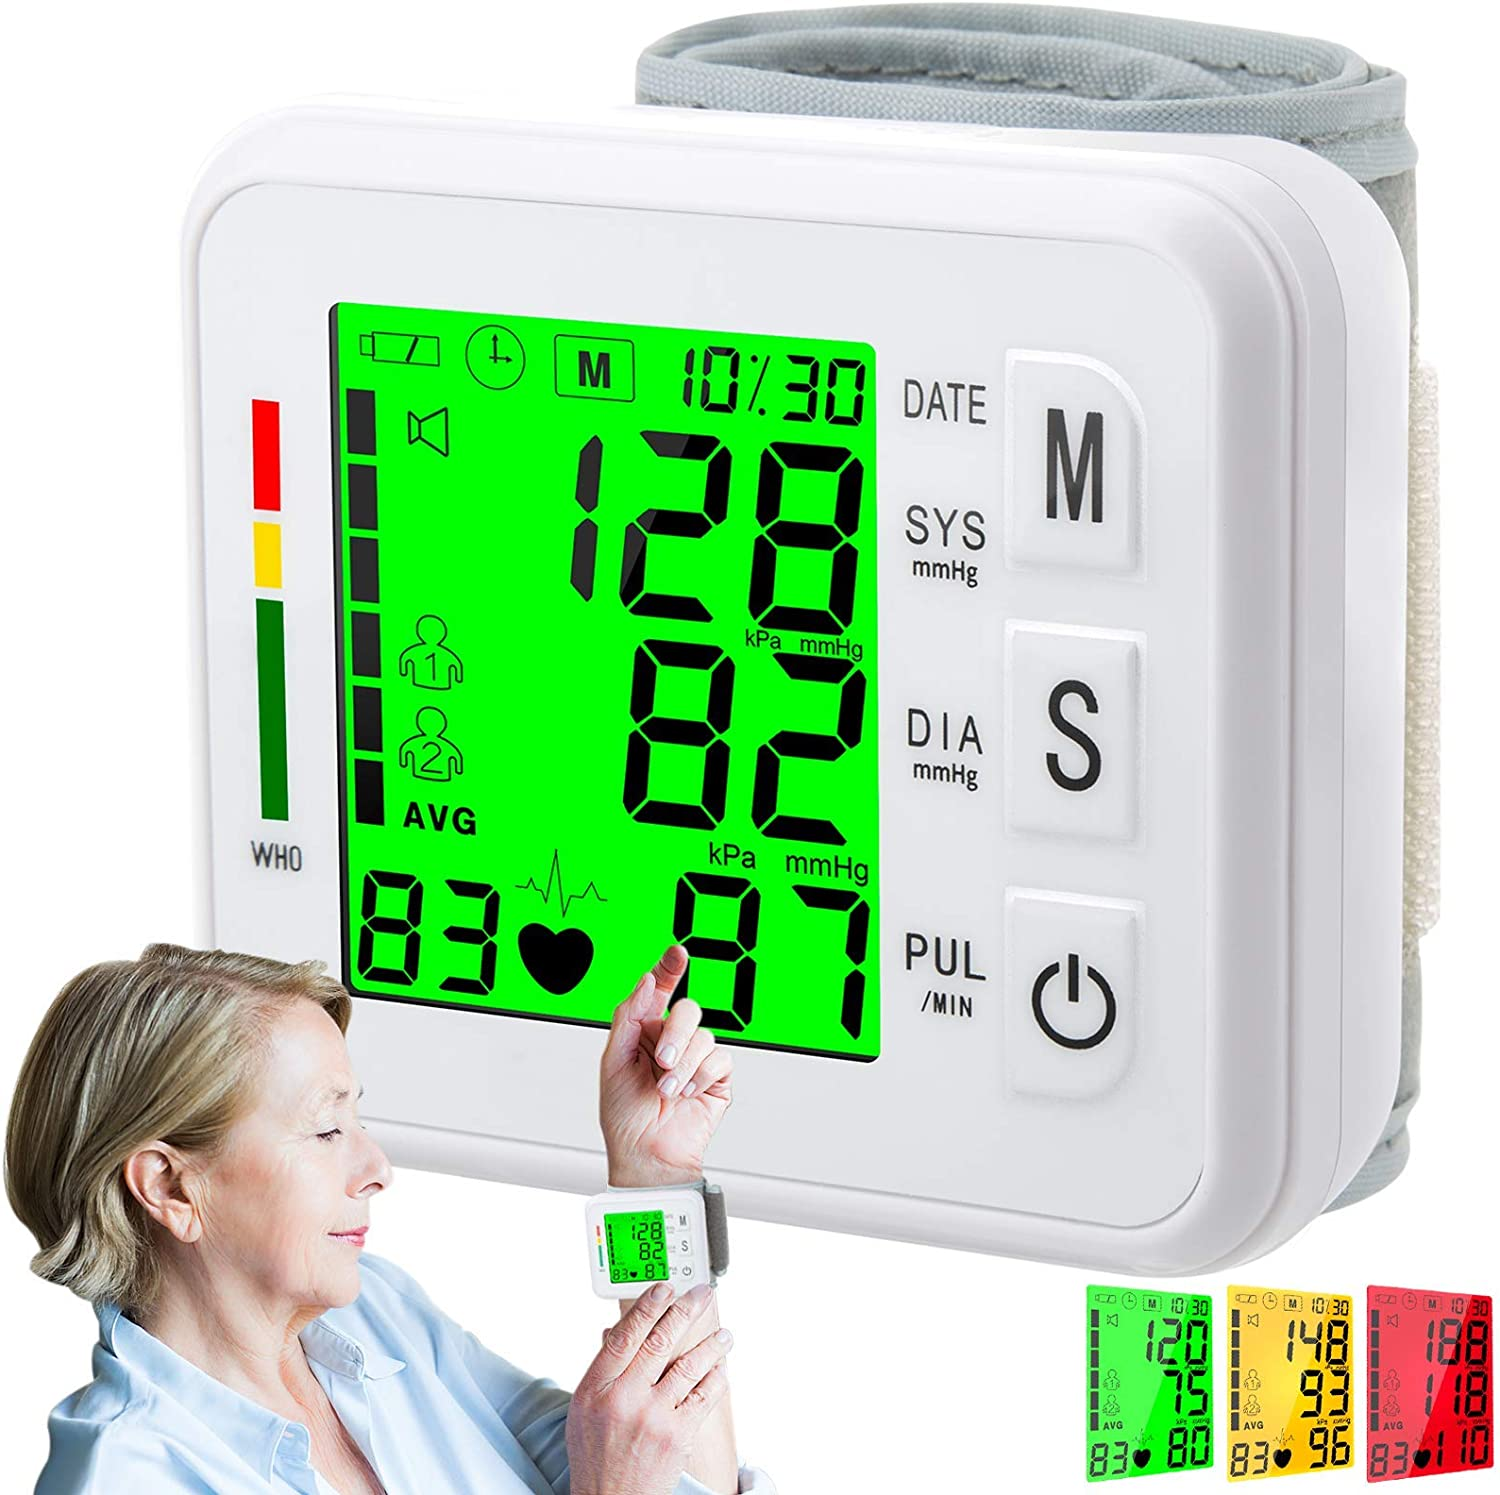 Atrilly Blood Pressure Monitor, Wrist Bp Monitor Cuff with Large Screen, 2x99 Memory, Automatic Digital Blood Pressure Machine Pulse Rate Monitor for 2 User Home Personal Use Elderly Adult